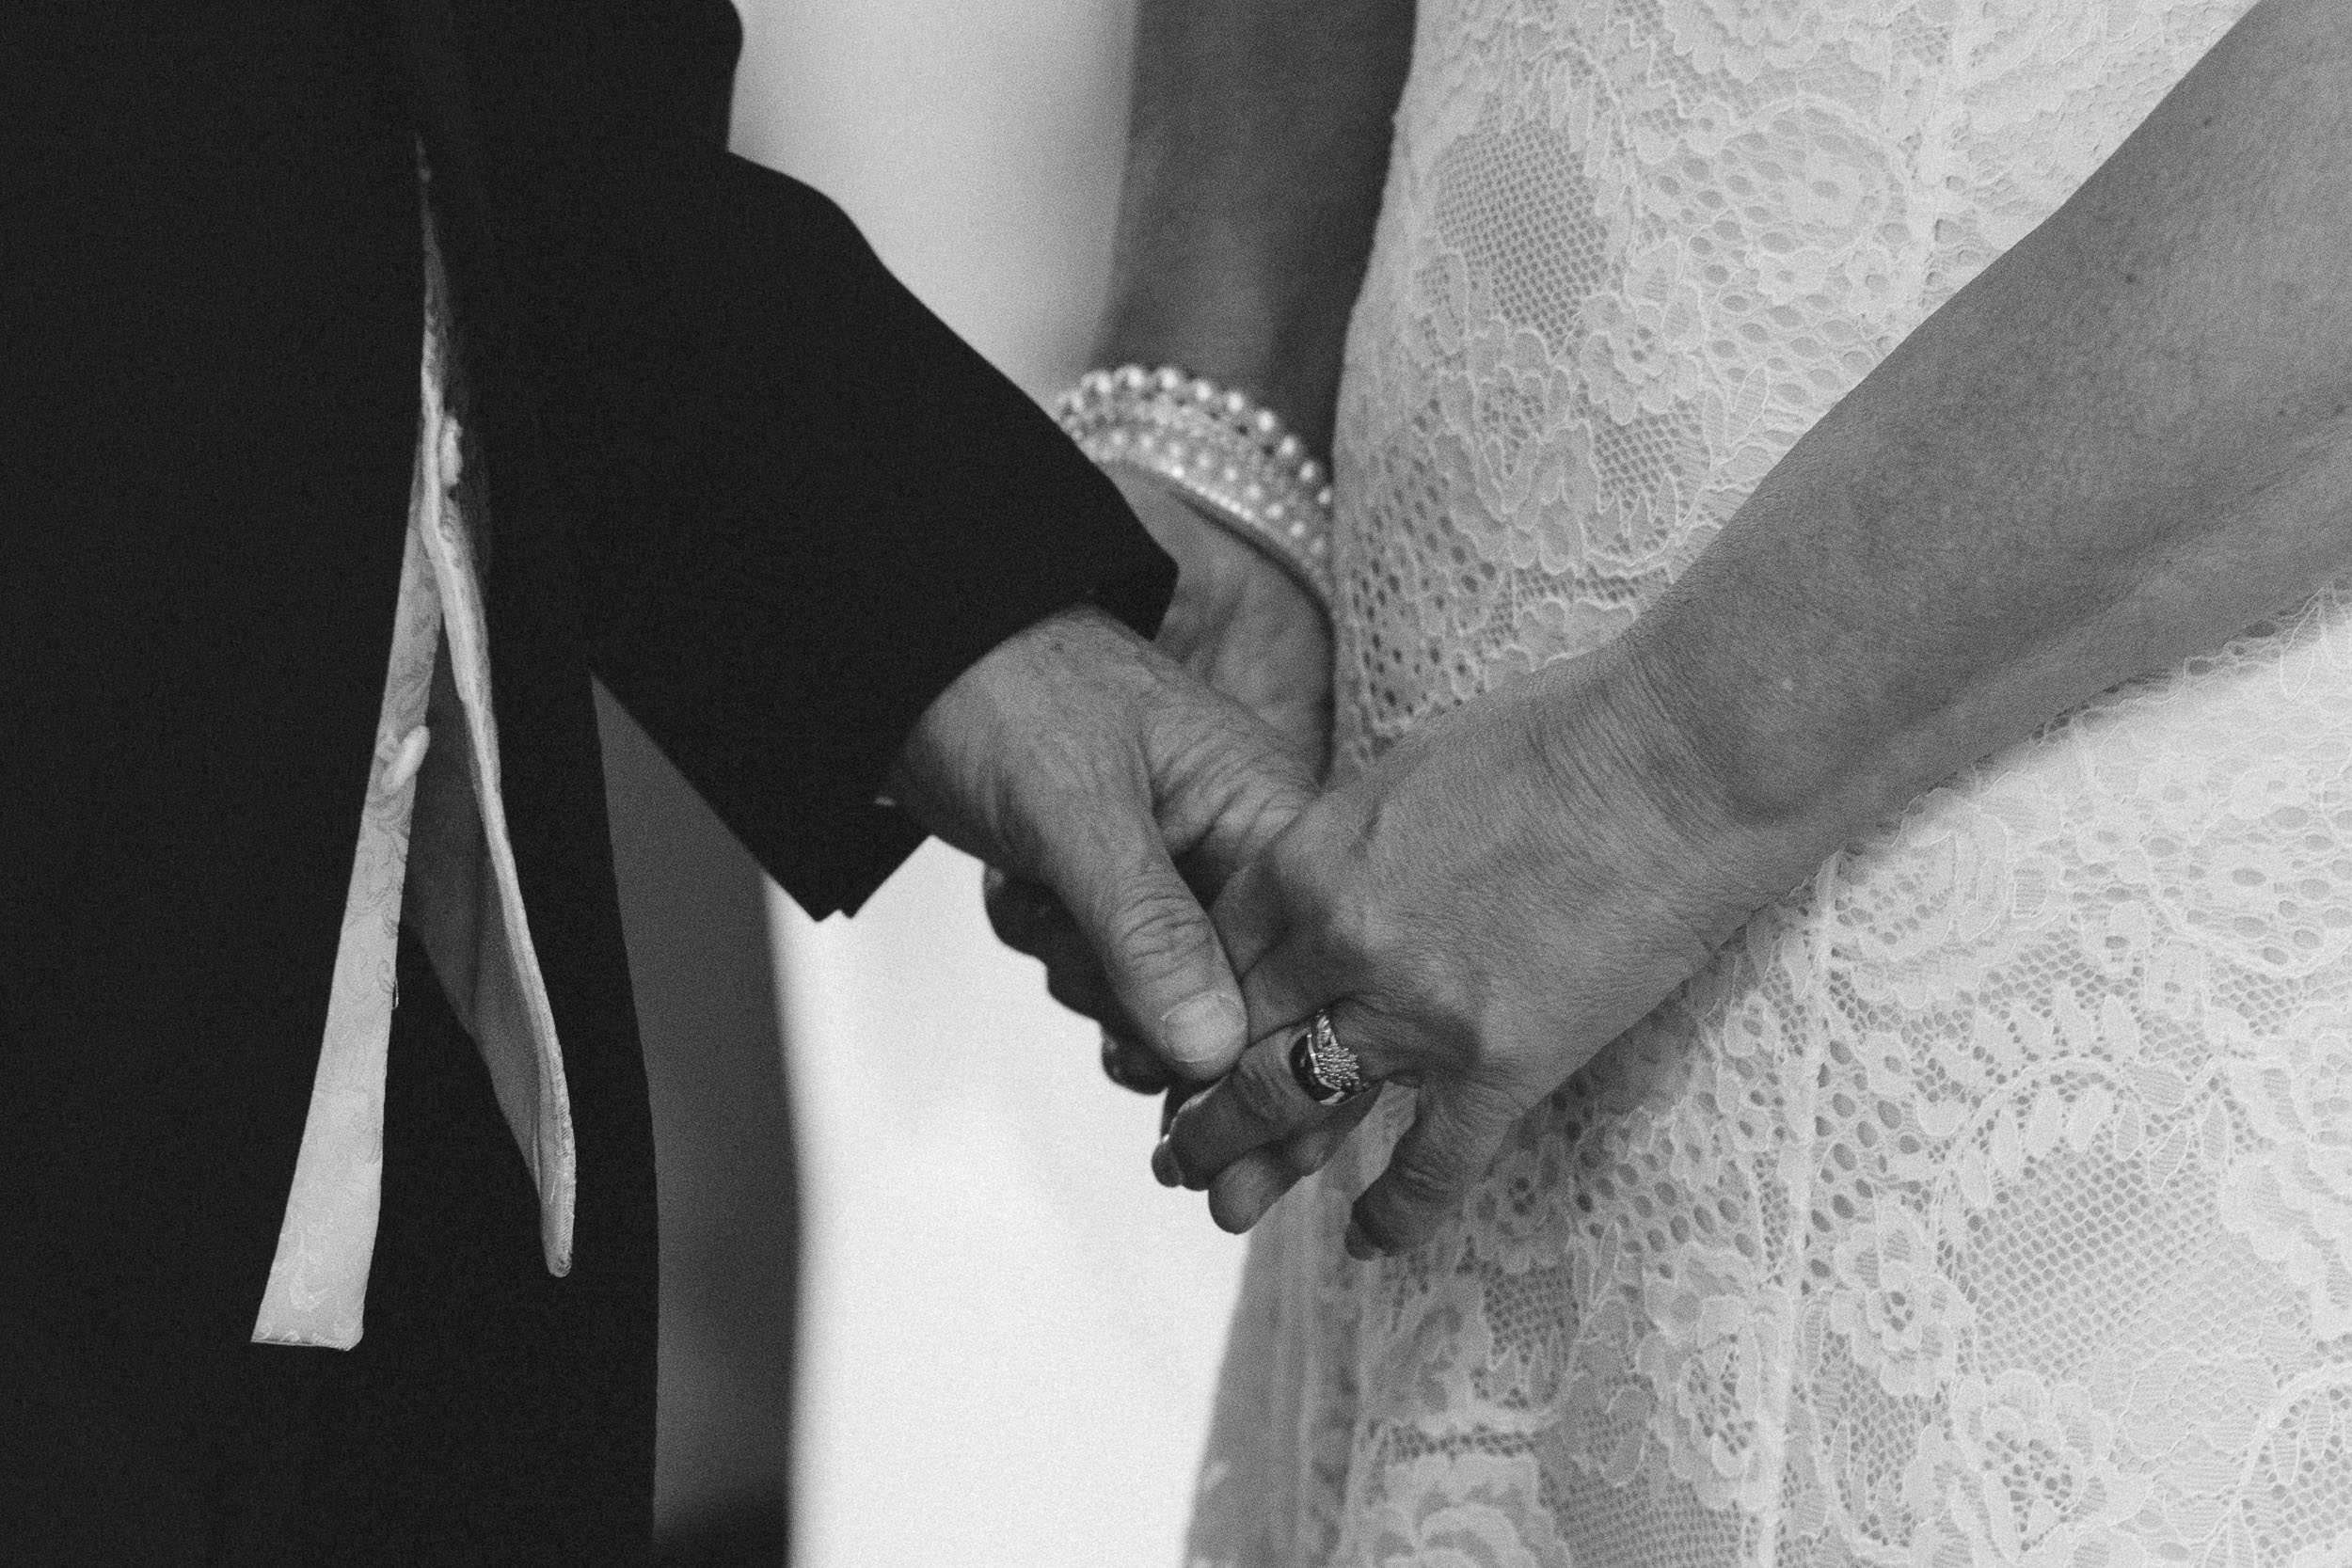 A black and white photo of the bride and groom holding hands during the wedding ceremony